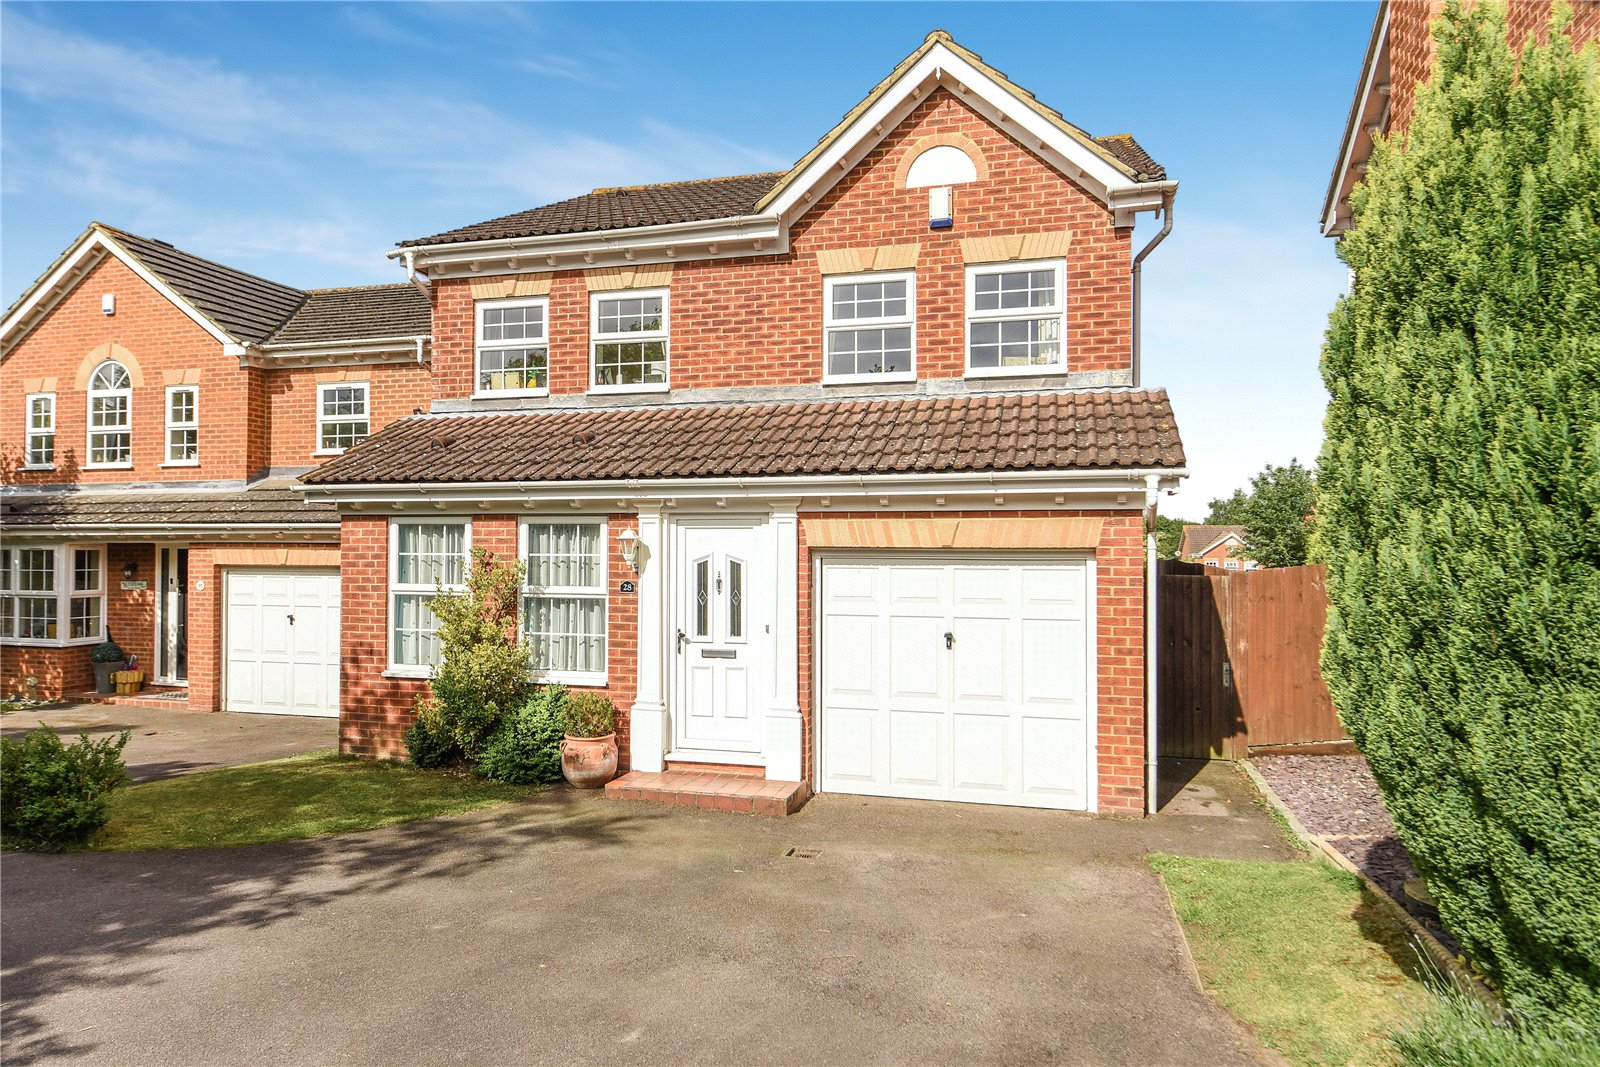 4 Bedrooms Detached House for sale in Essex Rise, Warfield, Bracknell, Berkshire, RG42